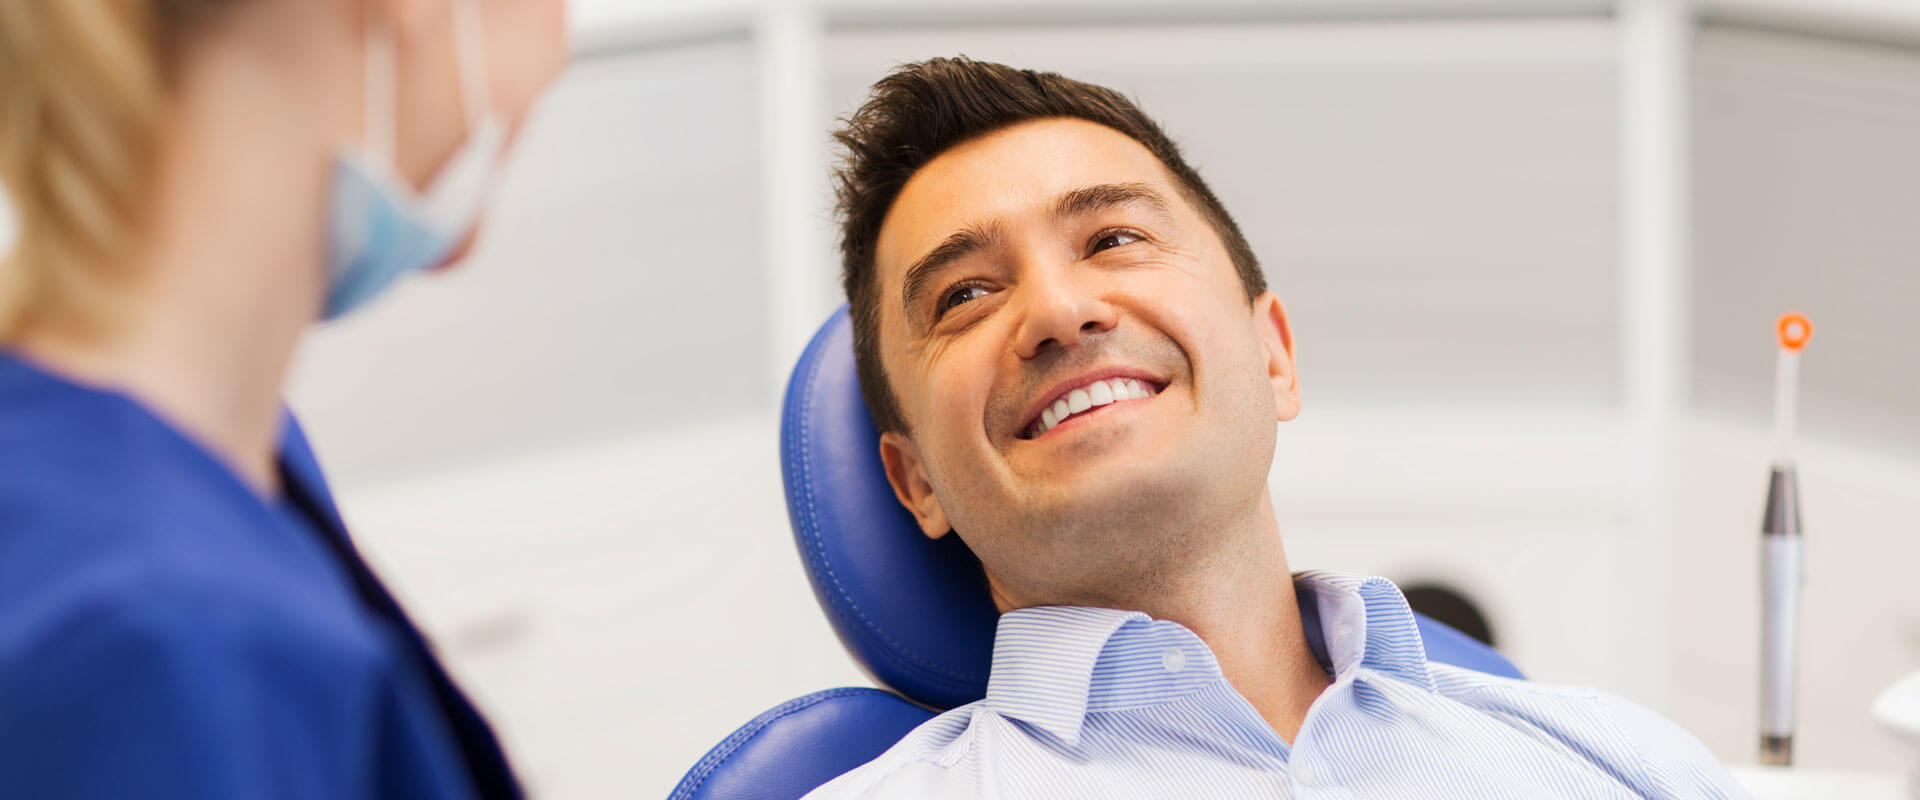 Downtown Dental Services - Blog